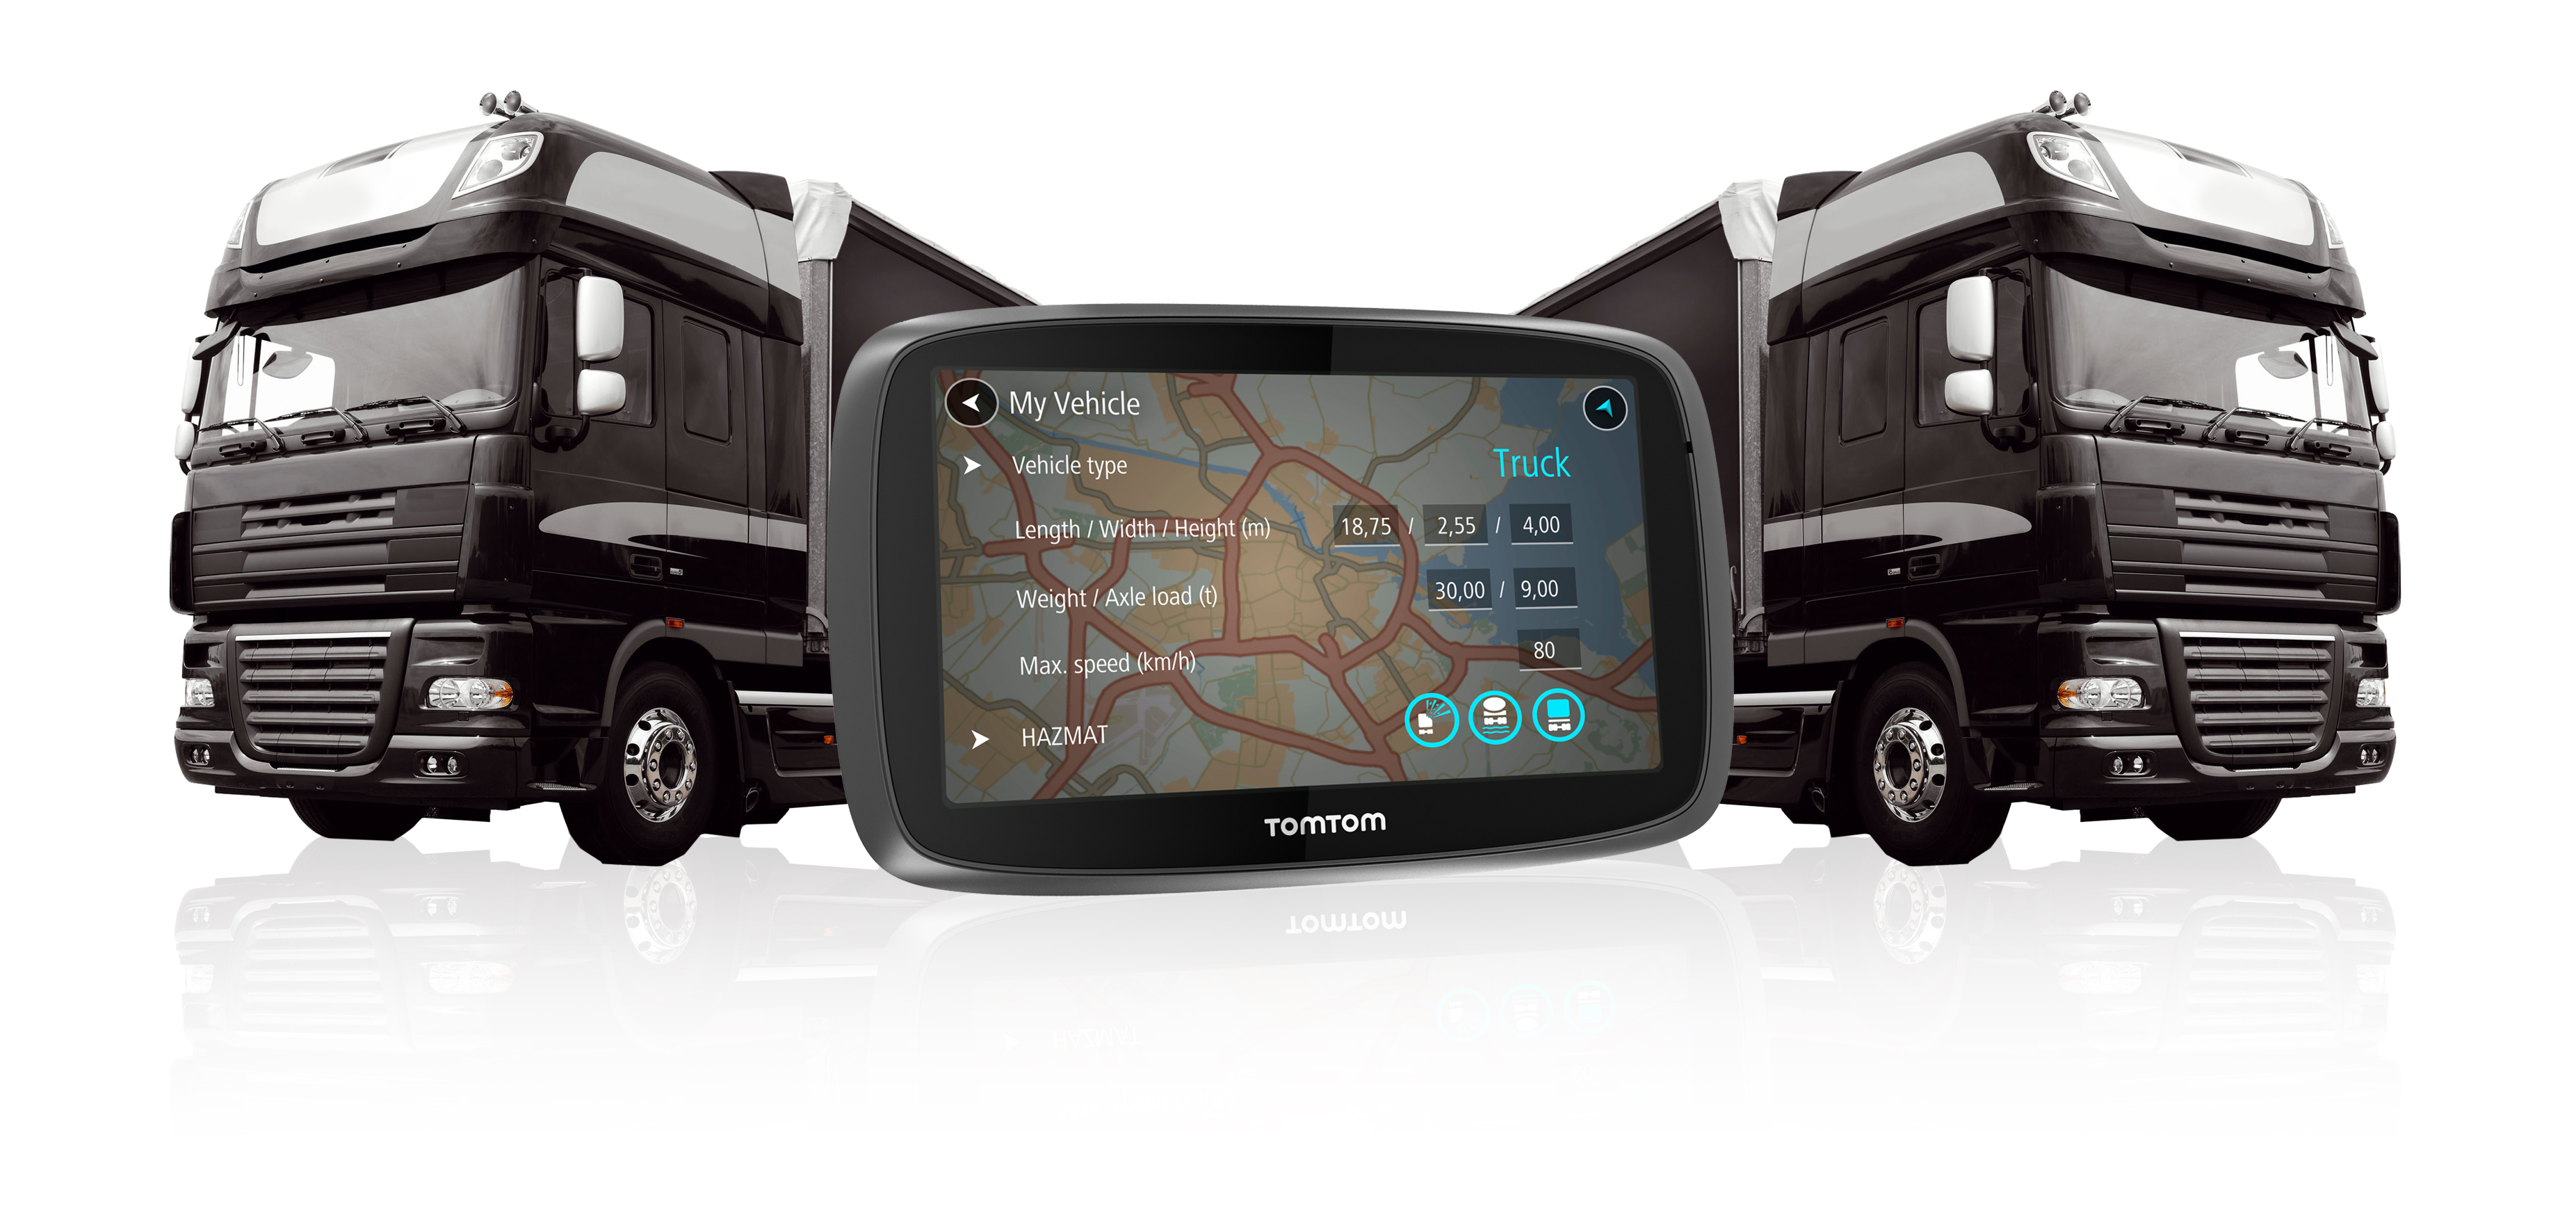 tomtom camionneur 5000 5 gps satnav camions poids lourds. Black Bedroom Furniture Sets. Home Design Ideas